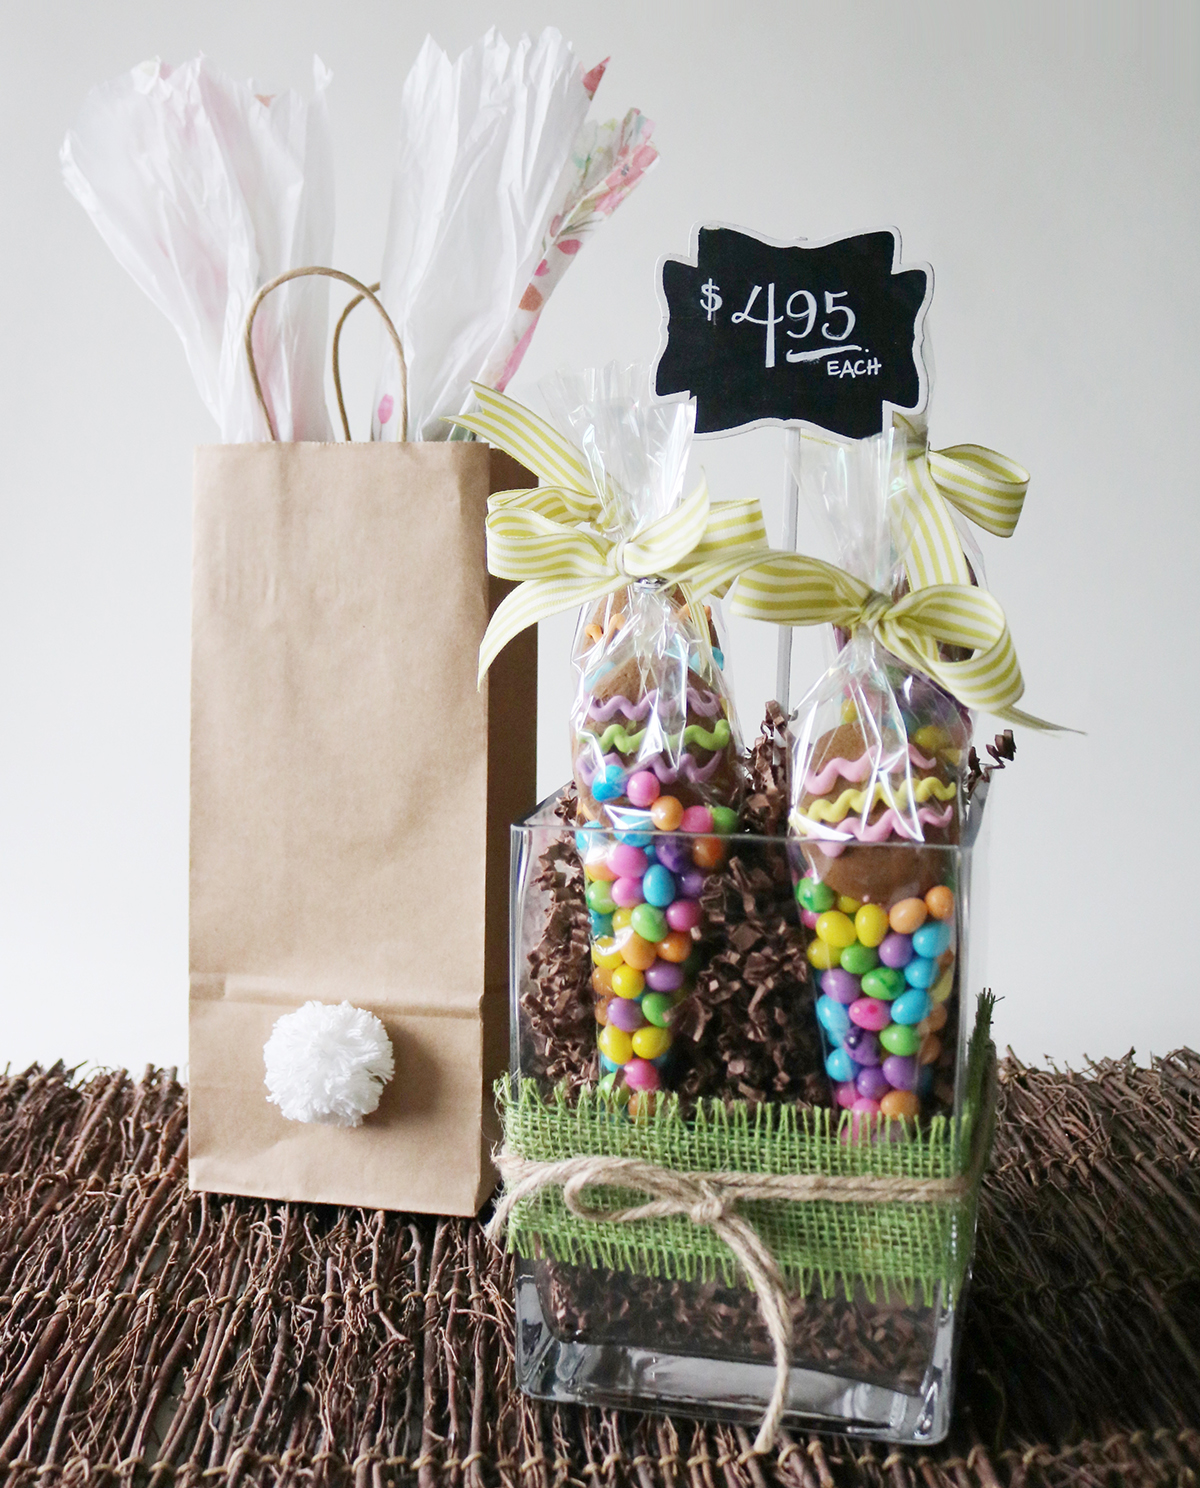 Easter packaging ideas every bunny will love | creativebag.com